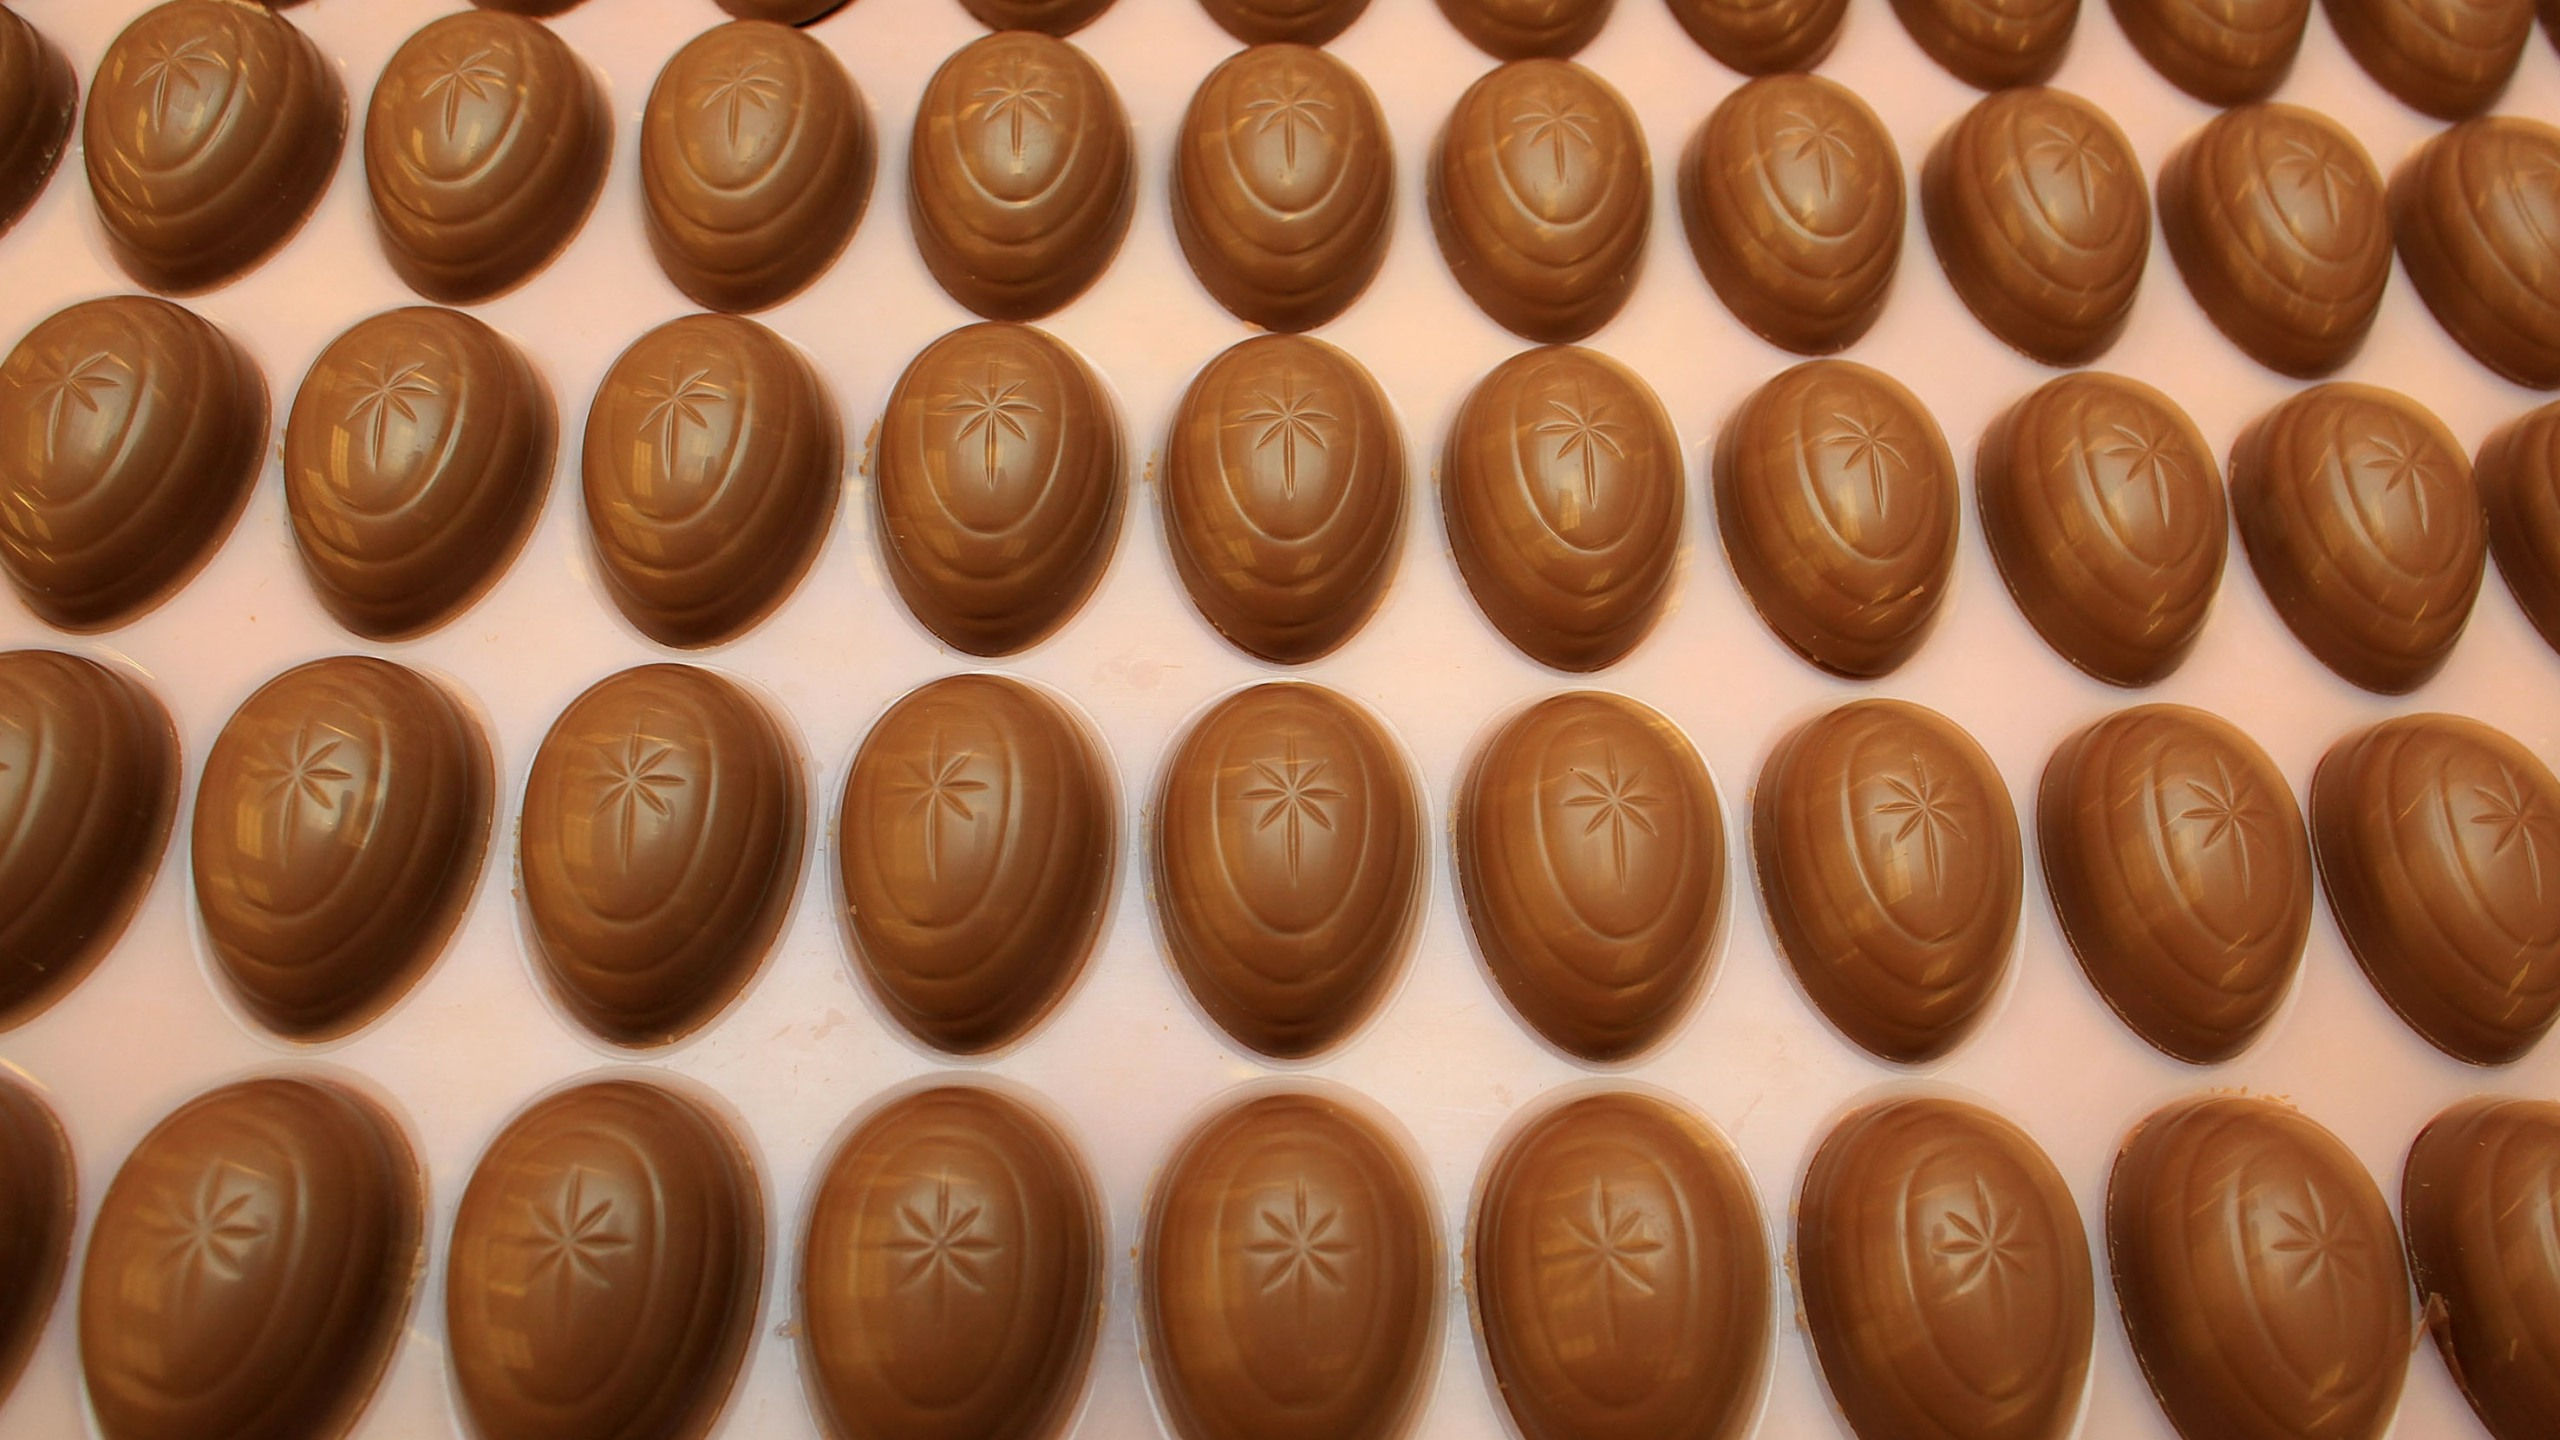 Chocolate Production Continues At Cadbury During Hostile Takeover Bids_607434